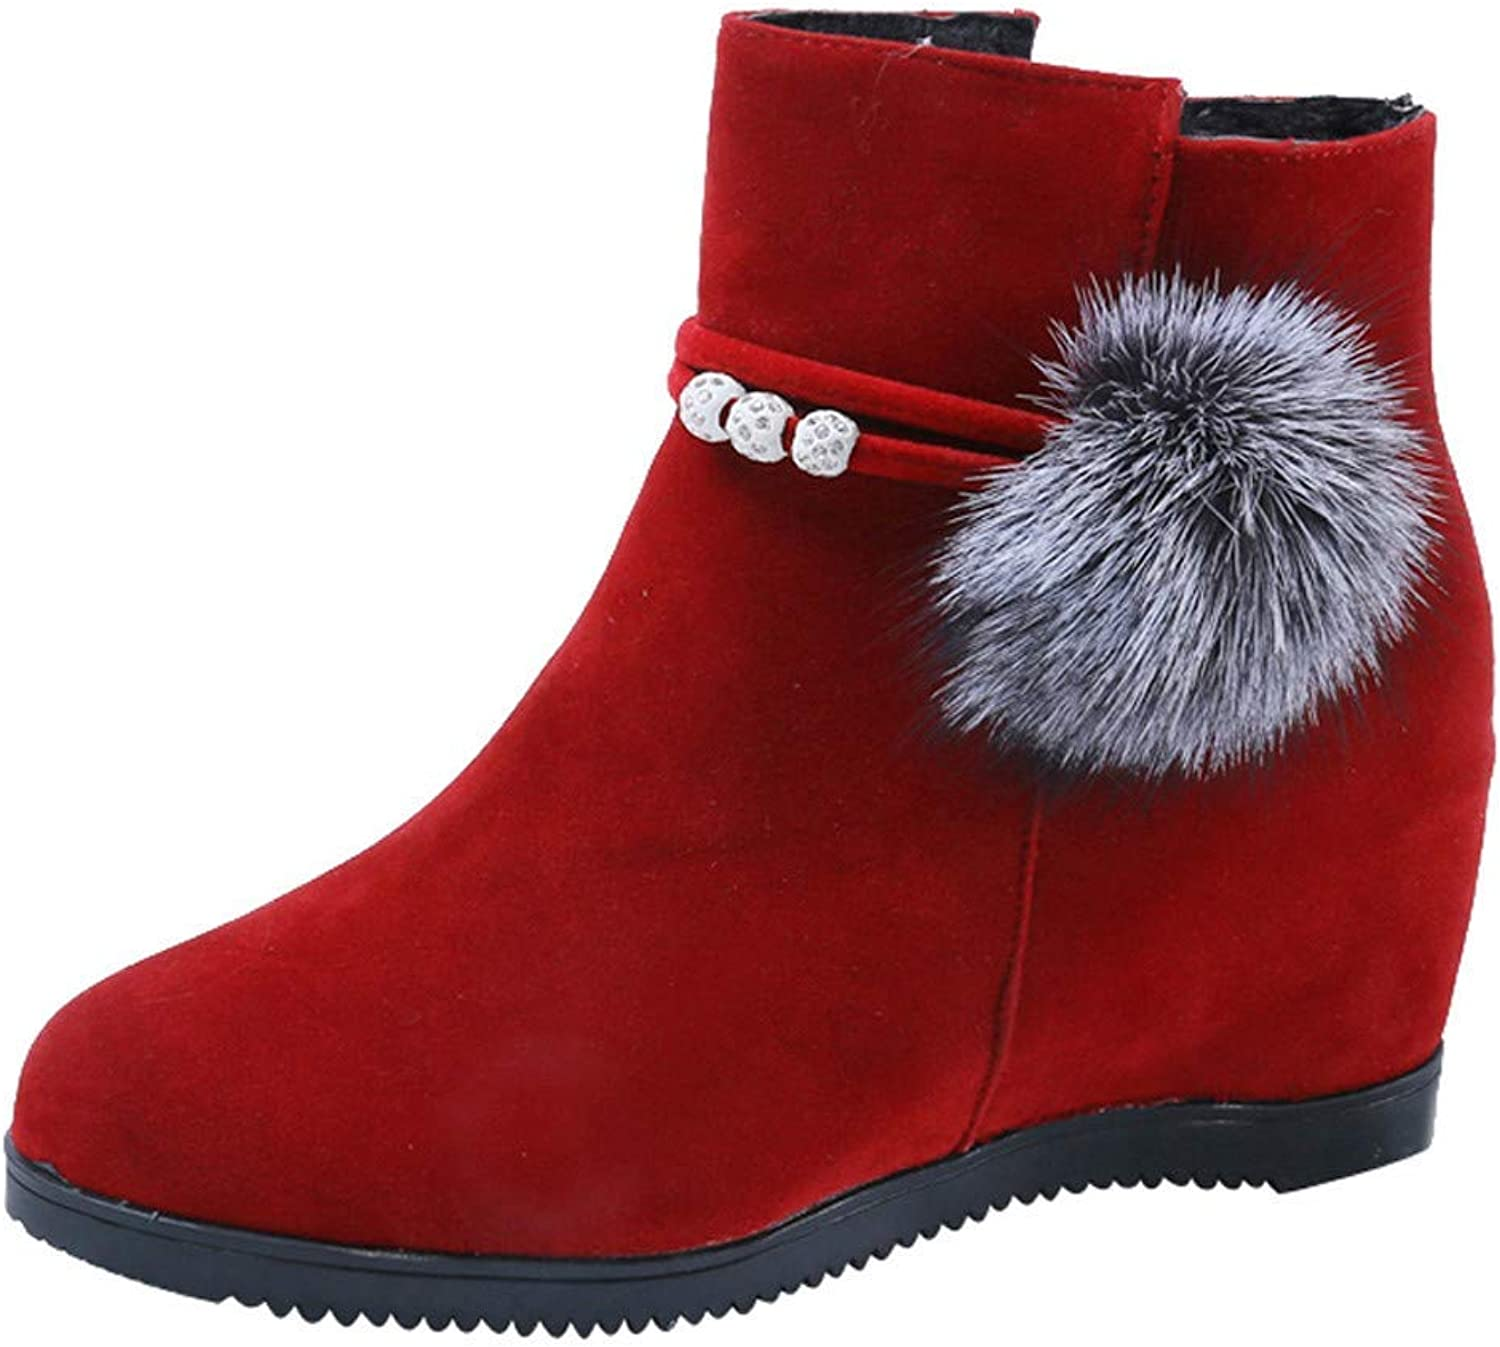 JaHGDU Women Suede Hairball Red Black Brown Round Toe Wedges shoes Pure color Zipper Martin Boots Cosy Wild Casual Quality Super Elegant Leisure for Womens